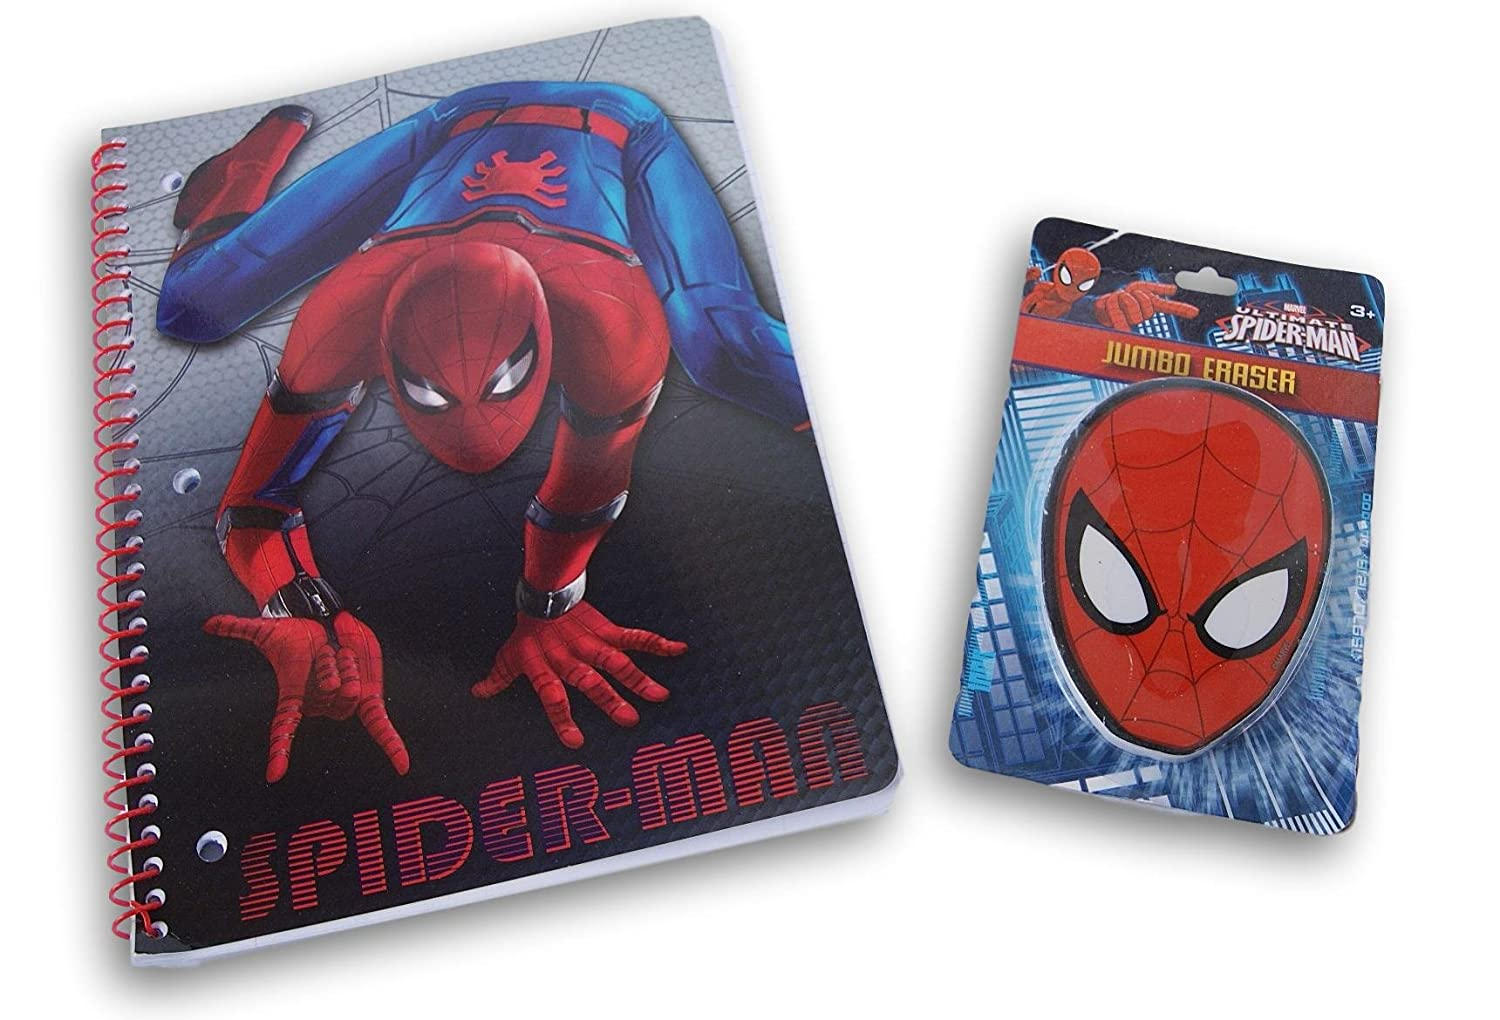 IDL Spider-Man Back to School Set - Spiral Notebook and Jumbo Eraser